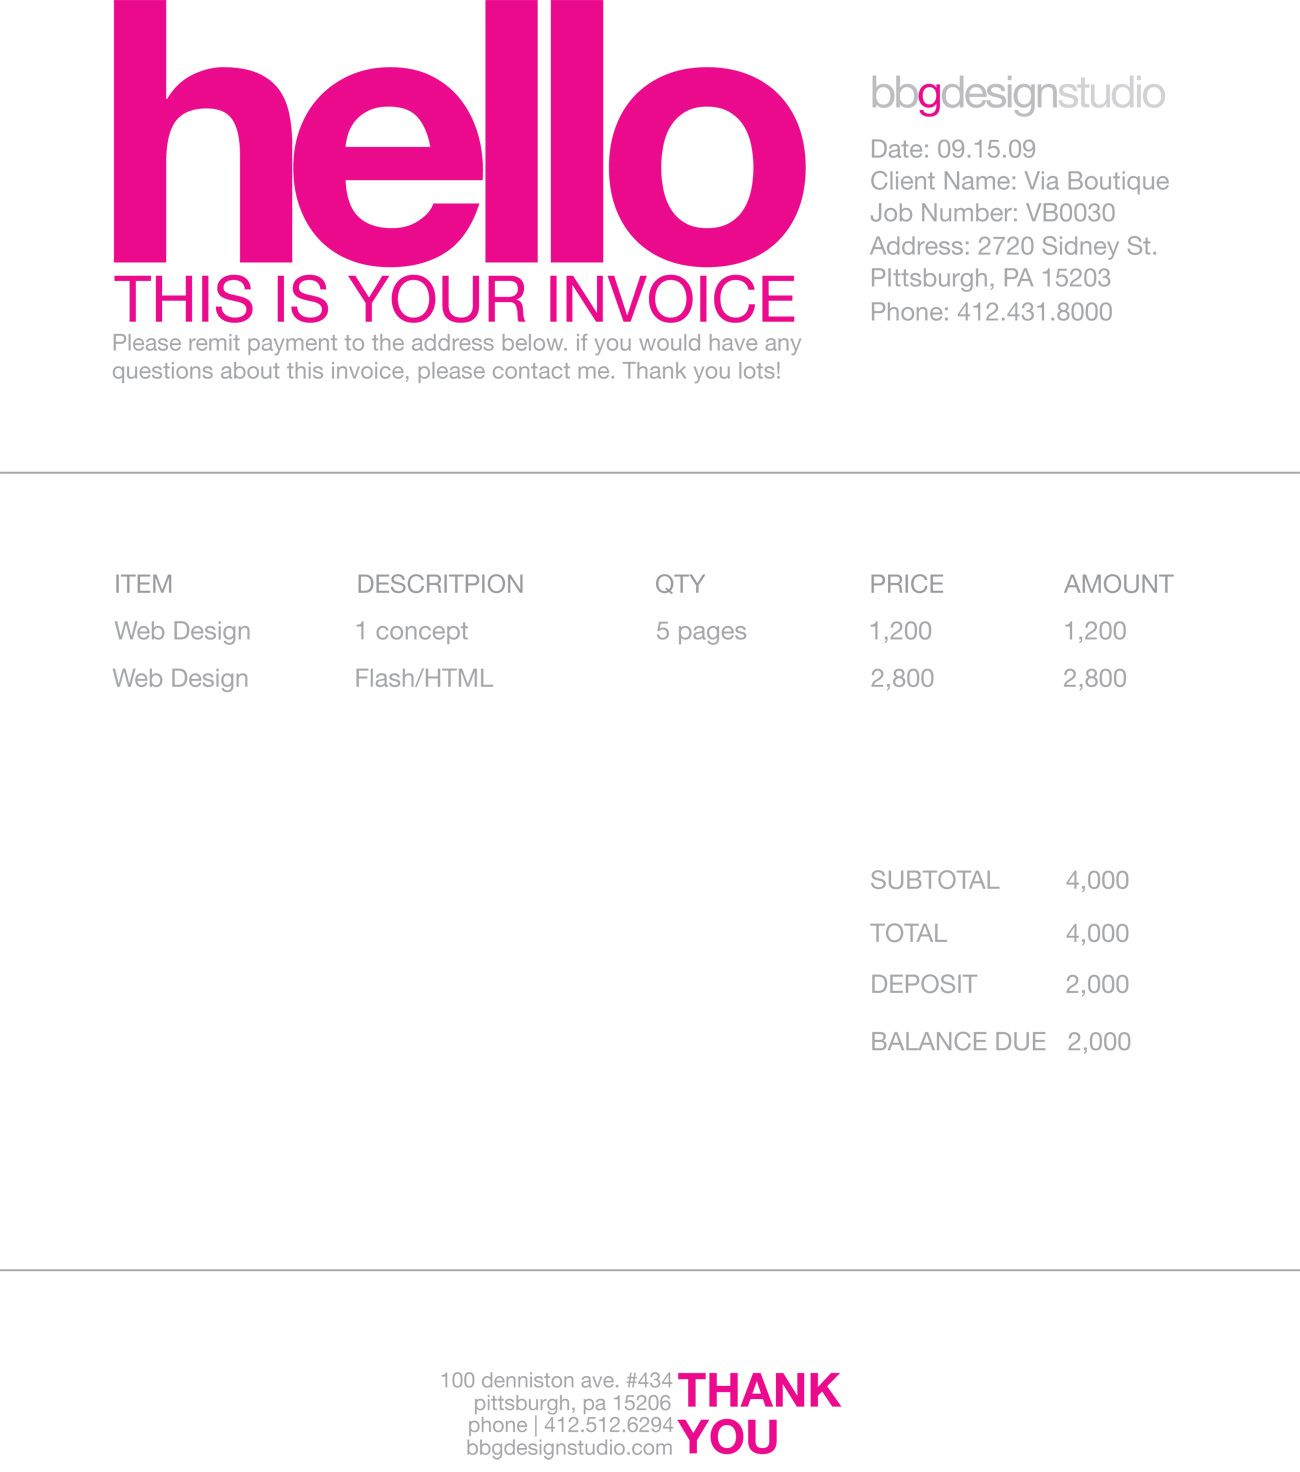 Reliefworkersus  Wonderful  Images About Invoice Design On Pinterest With Exquisite Sample Consulting Invoice Word Besides Software Development Invoice Furthermore Cargo Invoice With Appealing Purpose Of Invoice Also Pay Ups Invoice In Addition Monthly Invoice Template Excel And Billing Invoice Samples As Well As Resend Invoice Additionally Oracle Invoice Approval Workflow From Pinterestcom With Reliefworkersus  Exquisite  Images About Invoice Design On Pinterest With Appealing Sample Consulting Invoice Word Besides Software Development Invoice Furthermore Cargo Invoice And Wonderful Purpose Of Invoice Also Pay Ups Invoice In Addition Monthly Invoice Template Excel From Pinterestcom